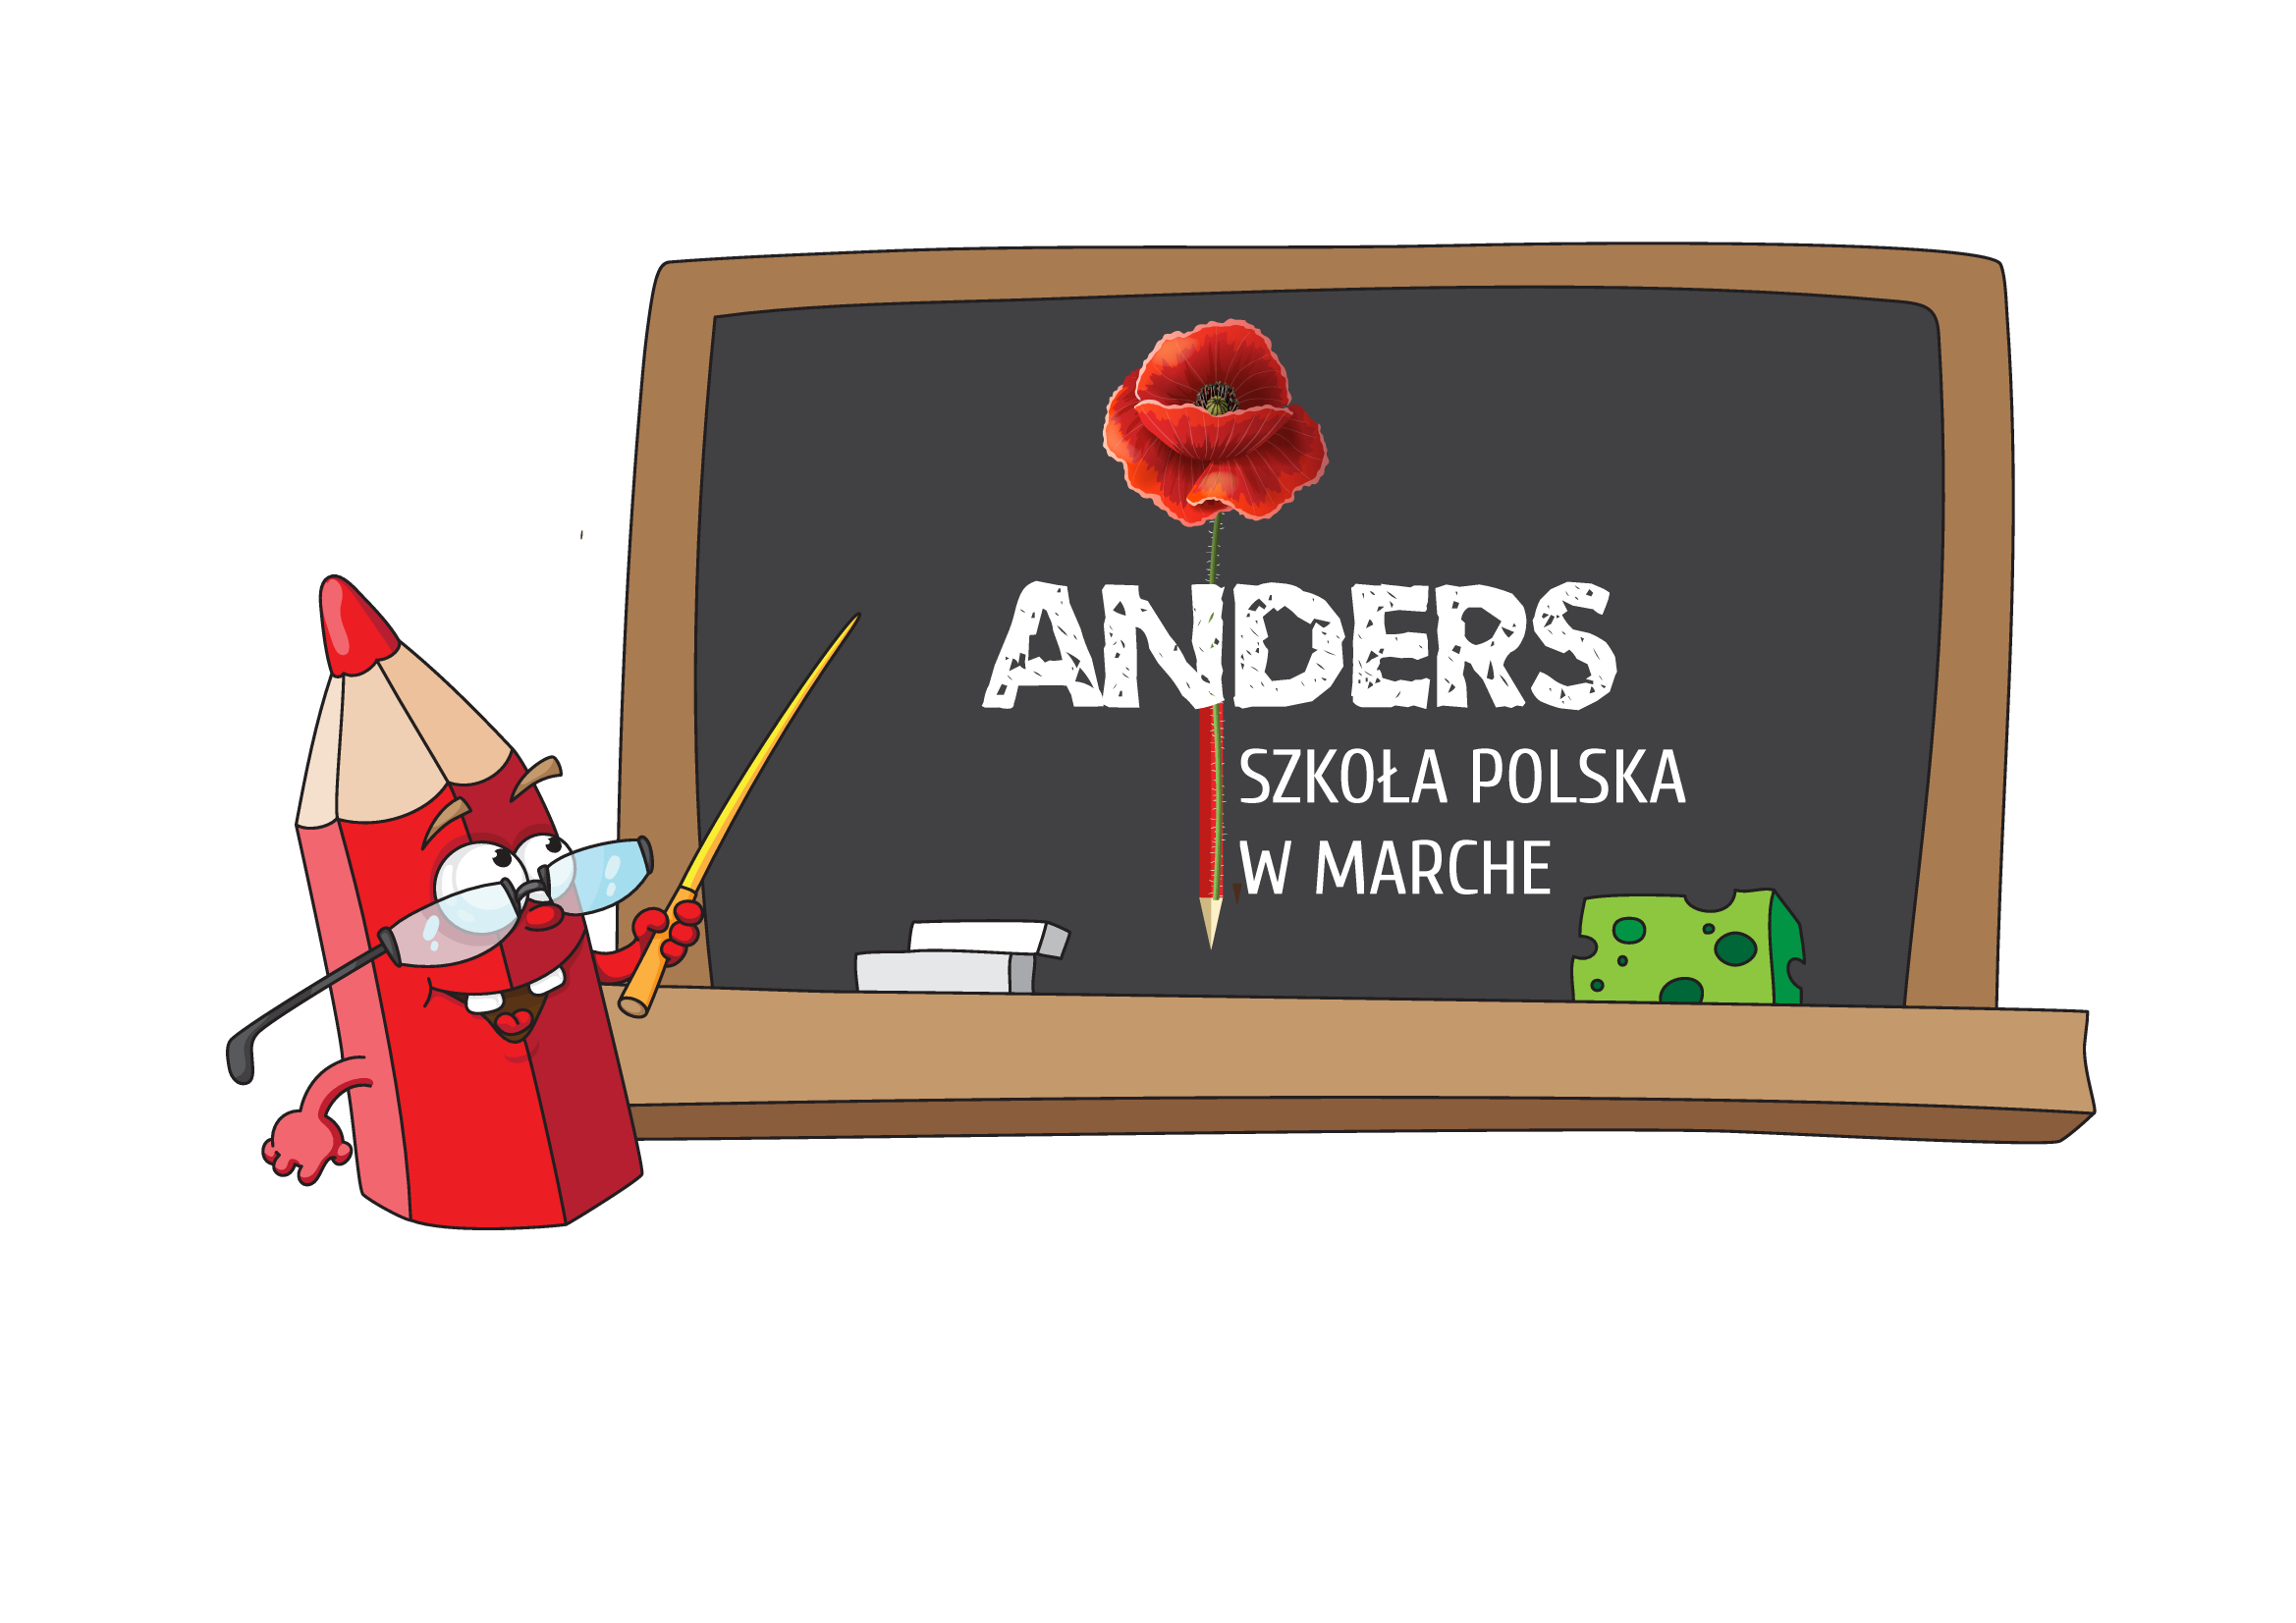 ANDERS_v2-1